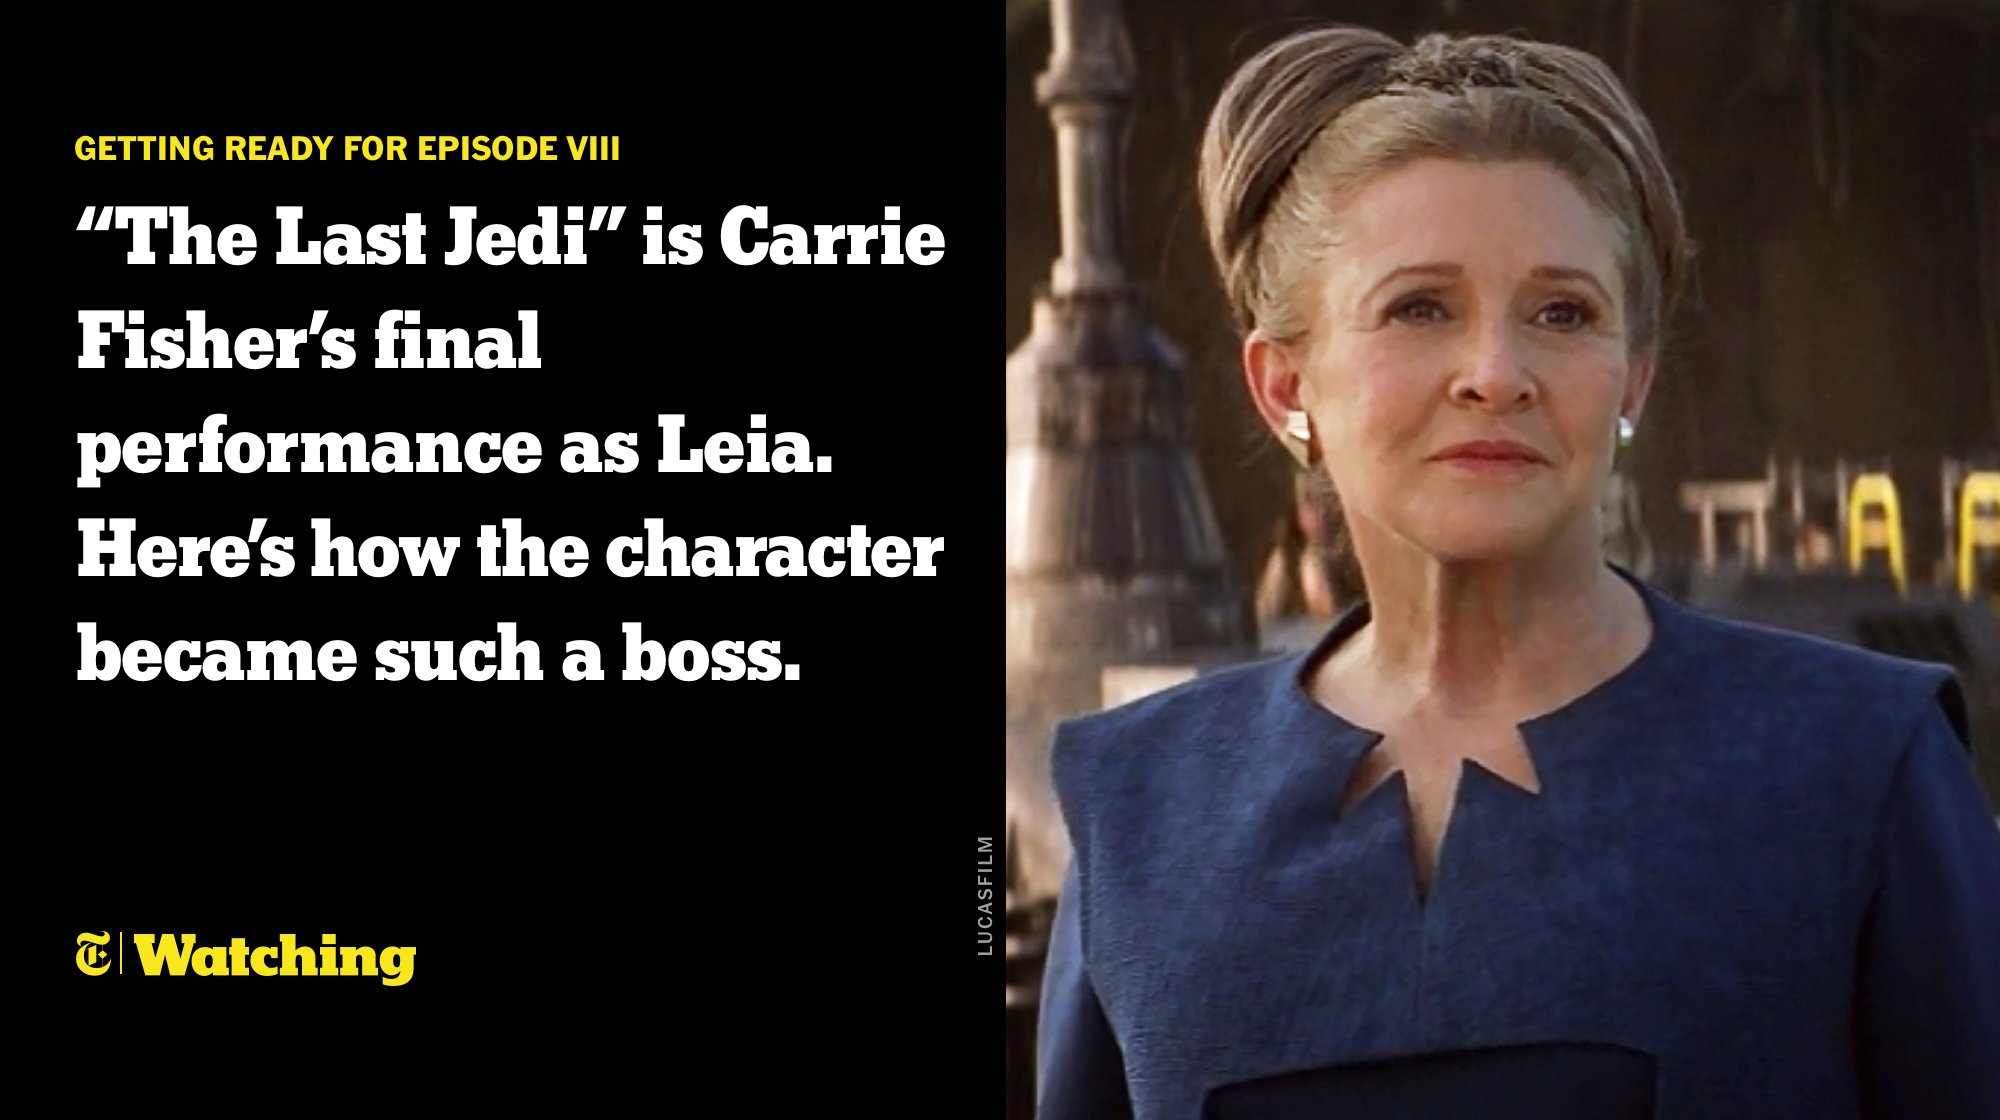 How Princess Leia went from secret baby to General Organa https://t.co/gF5yeeUJgT https://t.co/wxU2OBK0GB